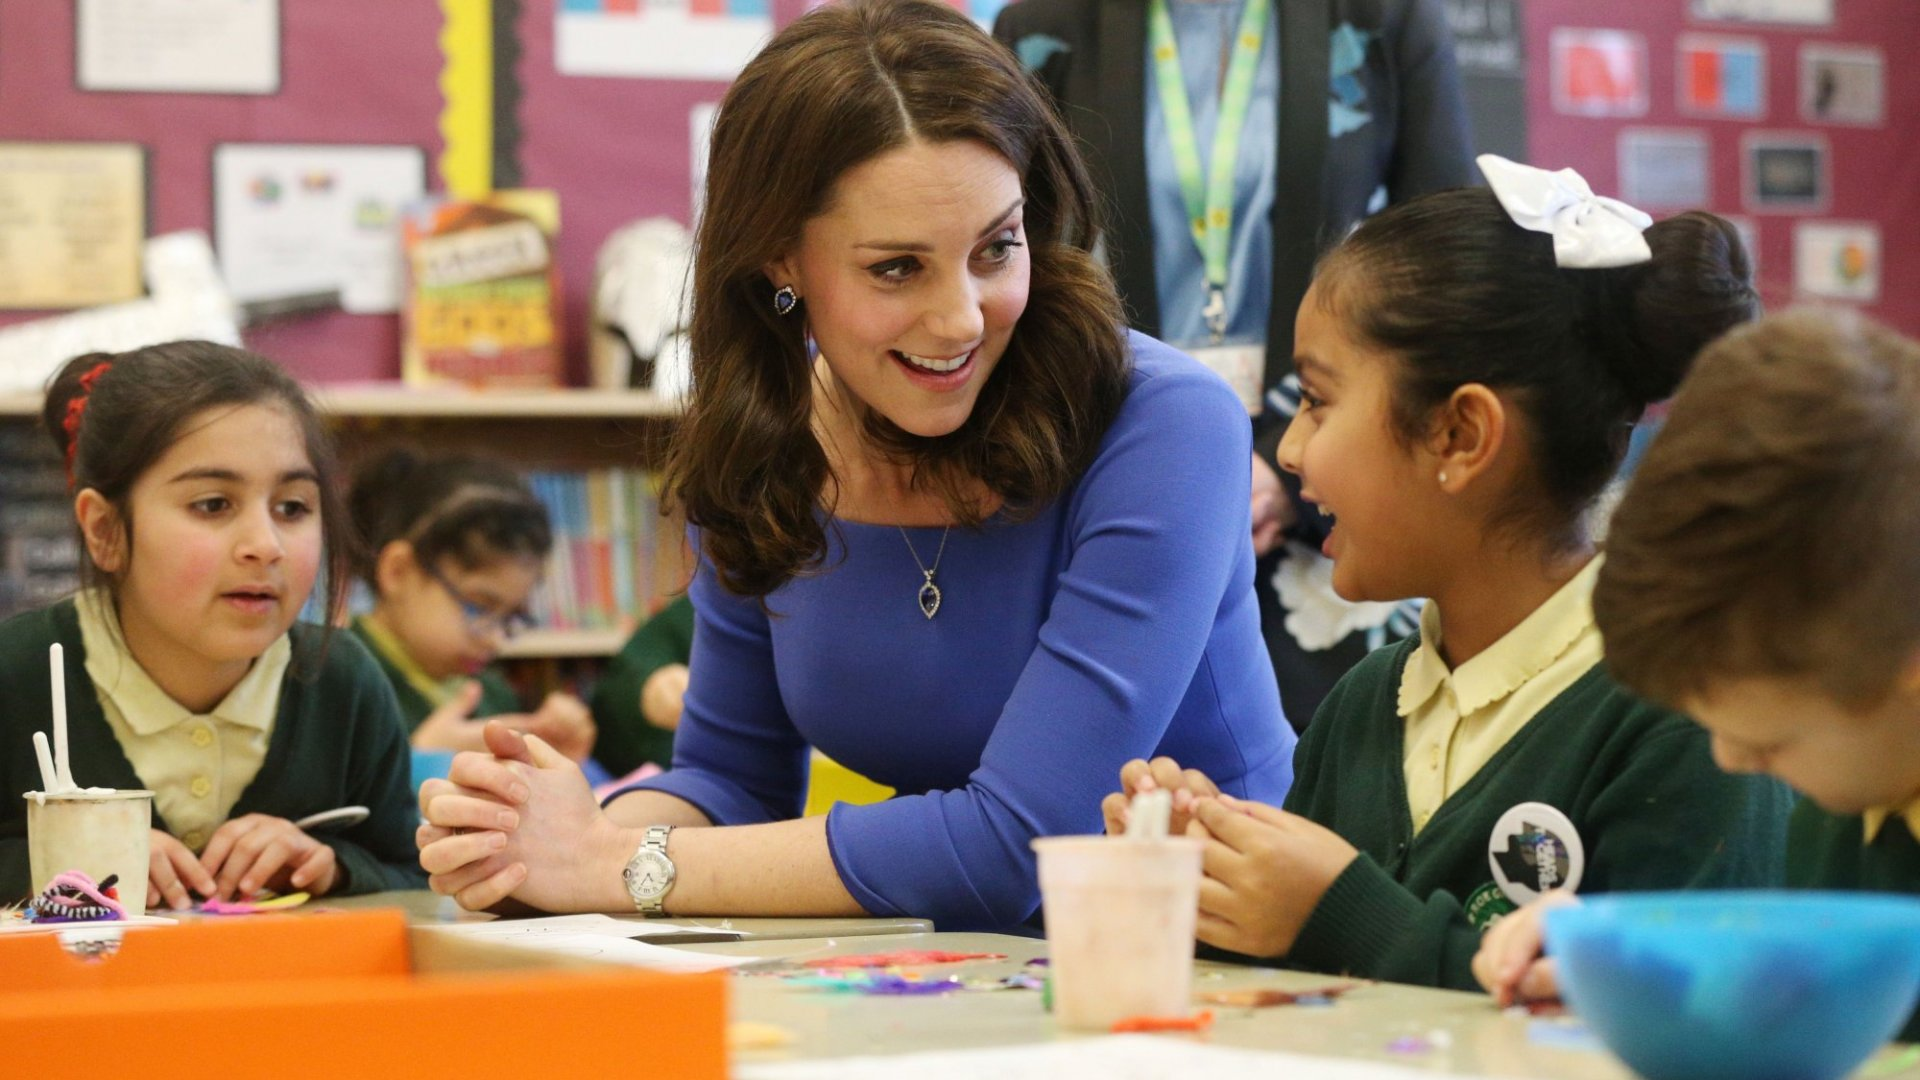 What Kate Middleton Just Said About Kid's Mental Health is a Good Topic for the Workplace, Too